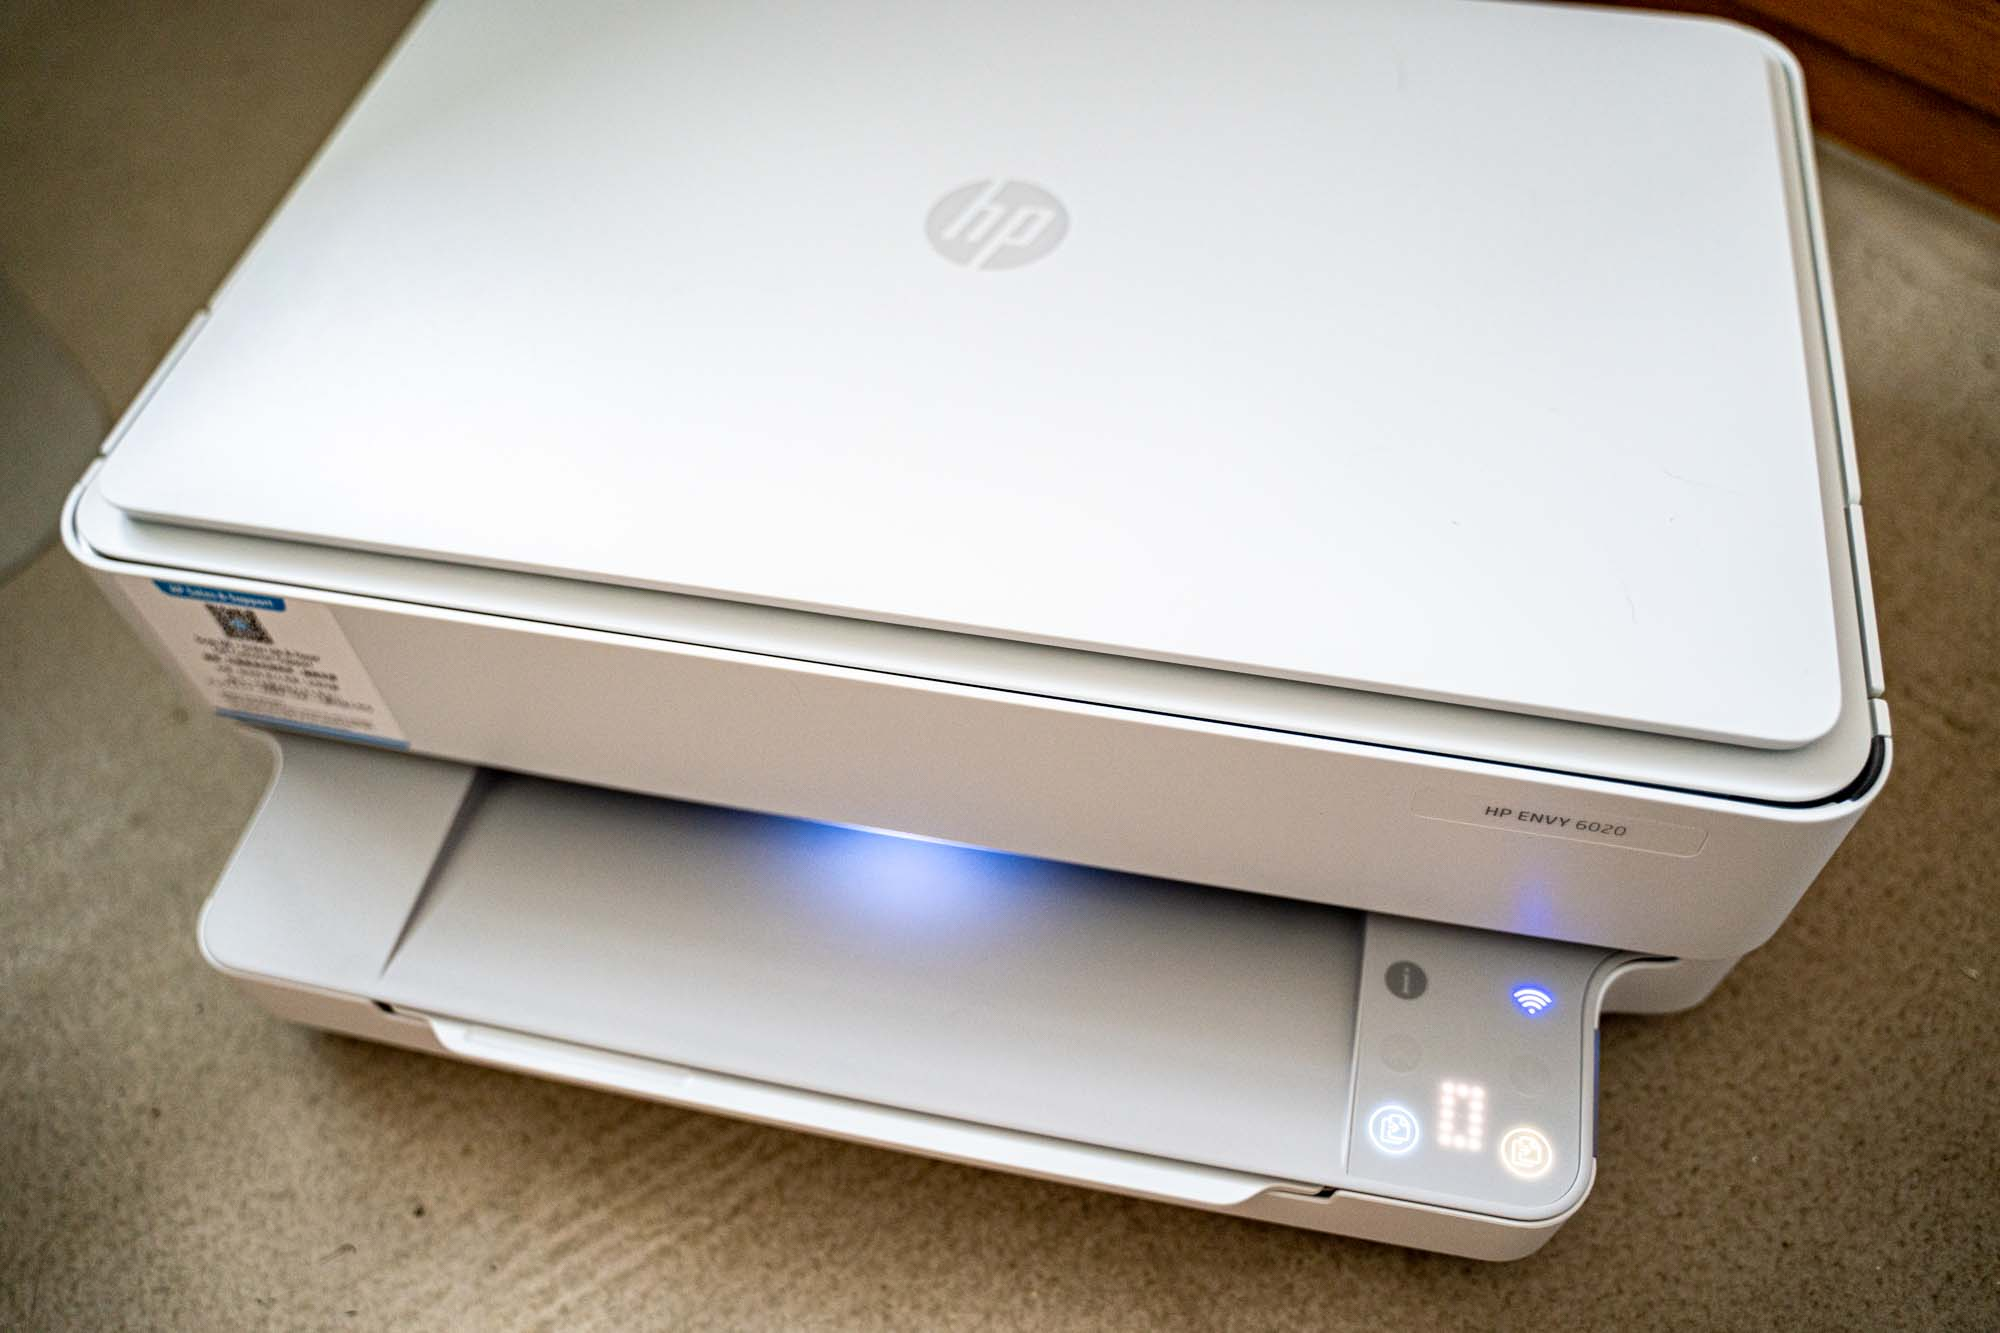 HP Envy 6020 All-in-One Printer